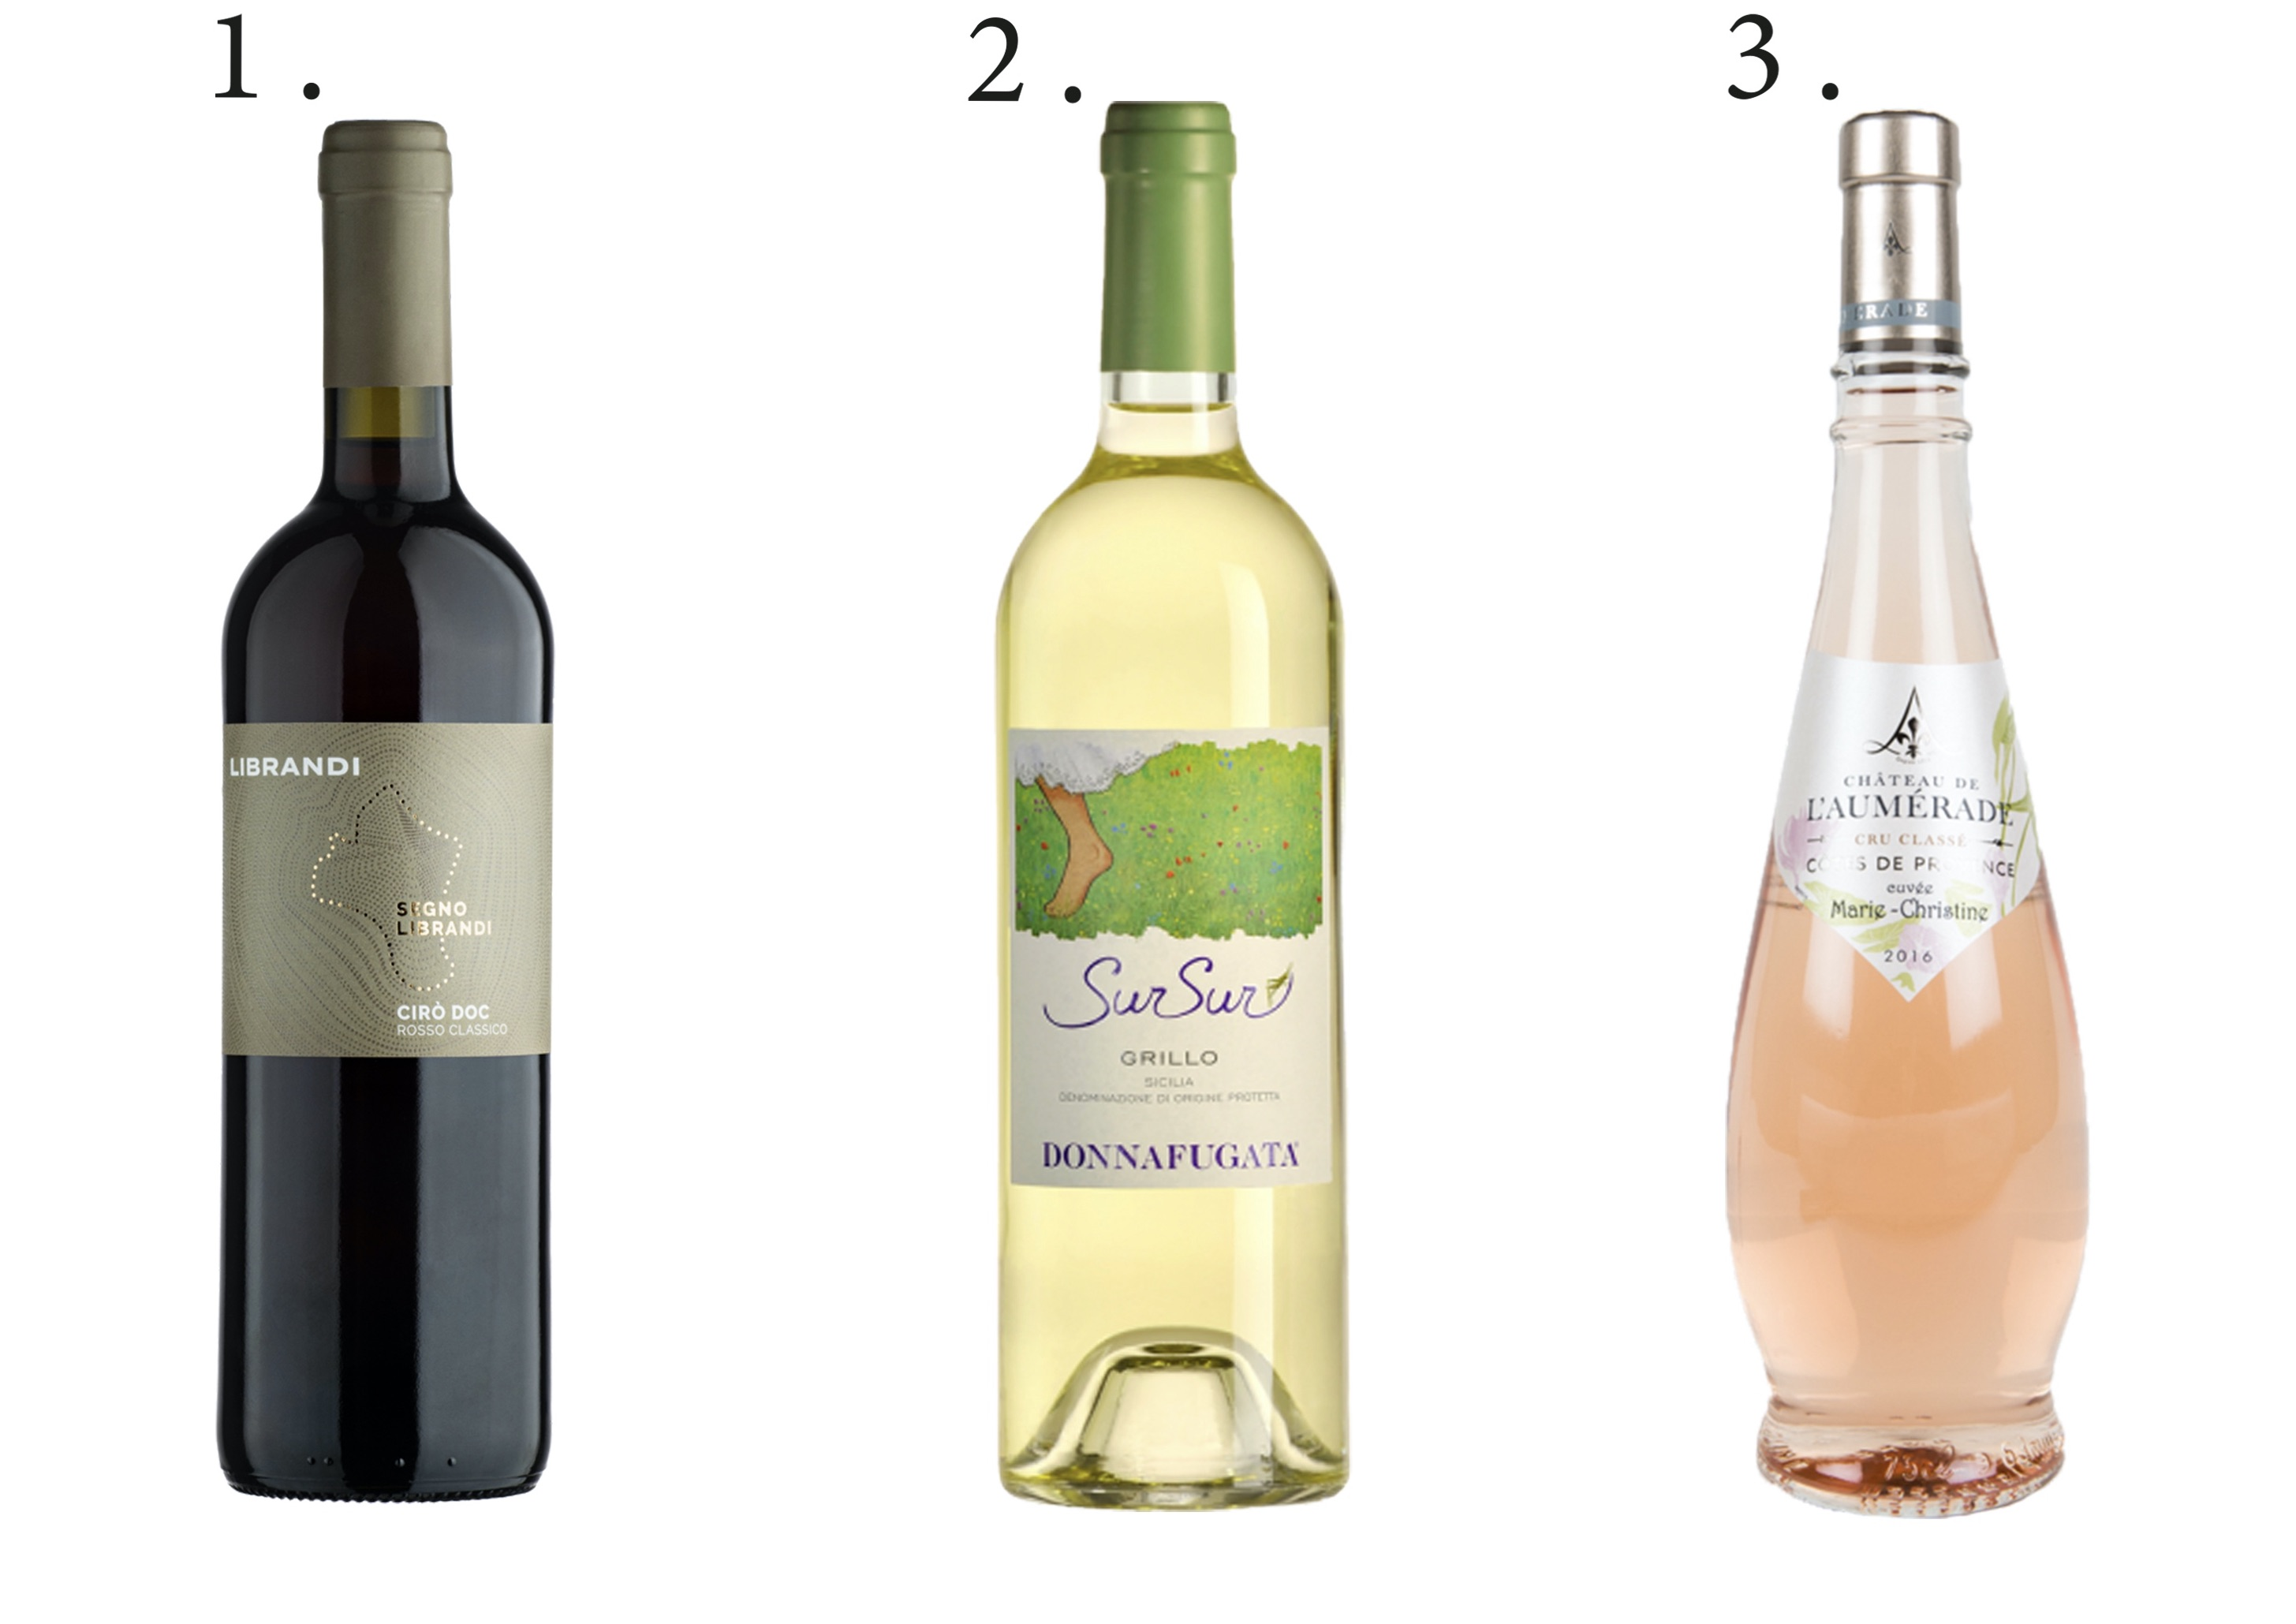 Our Top 3 Wine Pairing Ideas For The Barbecue